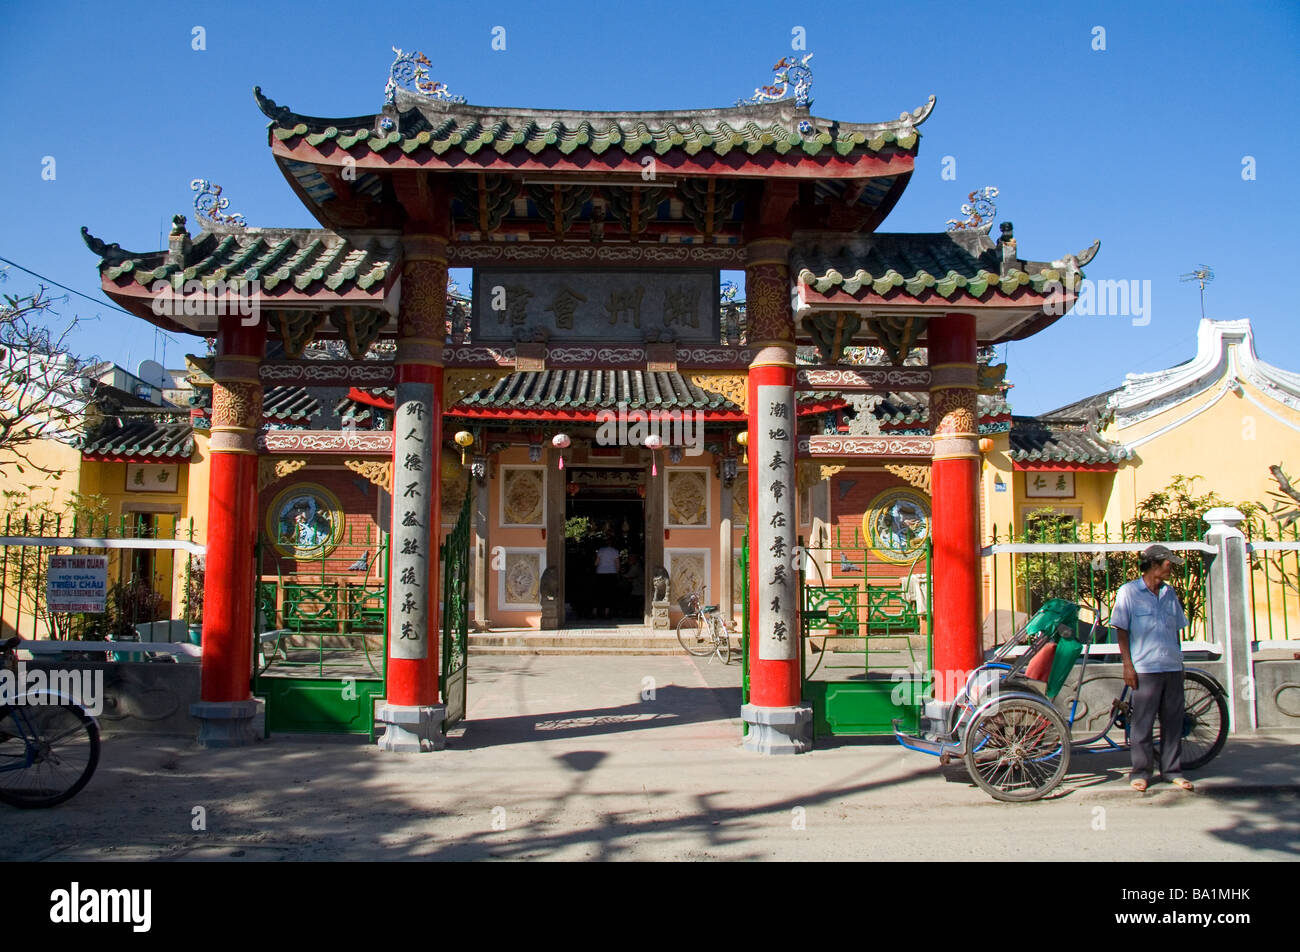 Trieu Chau Assembly Hall in Hoi An Vietnam - Stock Image